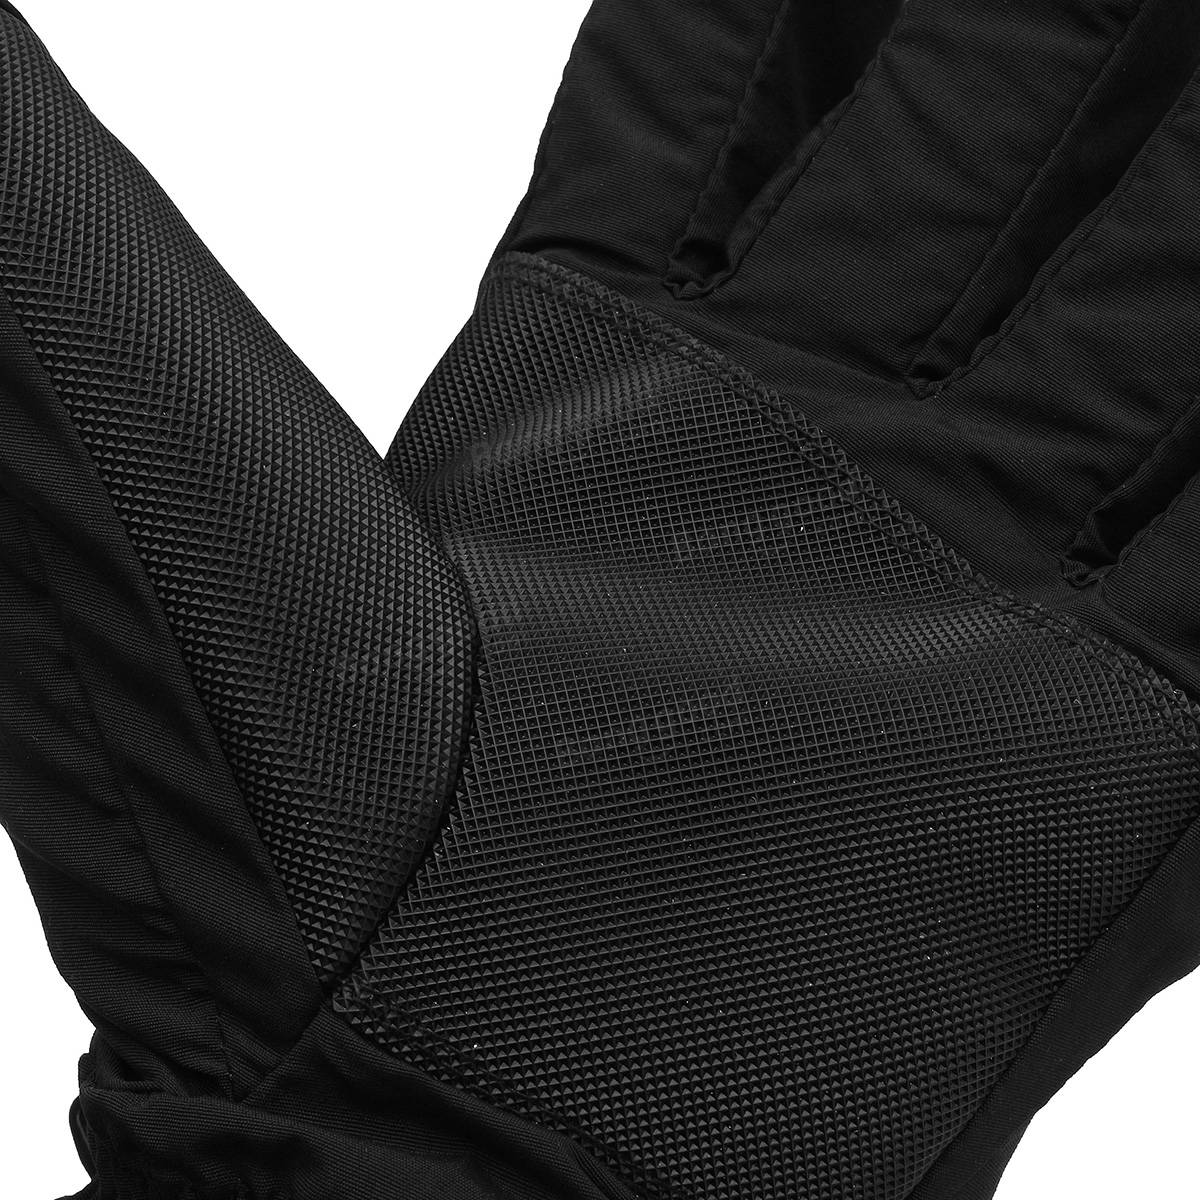 Heated motorcycle gloves new zealand - Heated Gloves Battery Power Motorcycle Hunting Winter Warm Outdoor Black